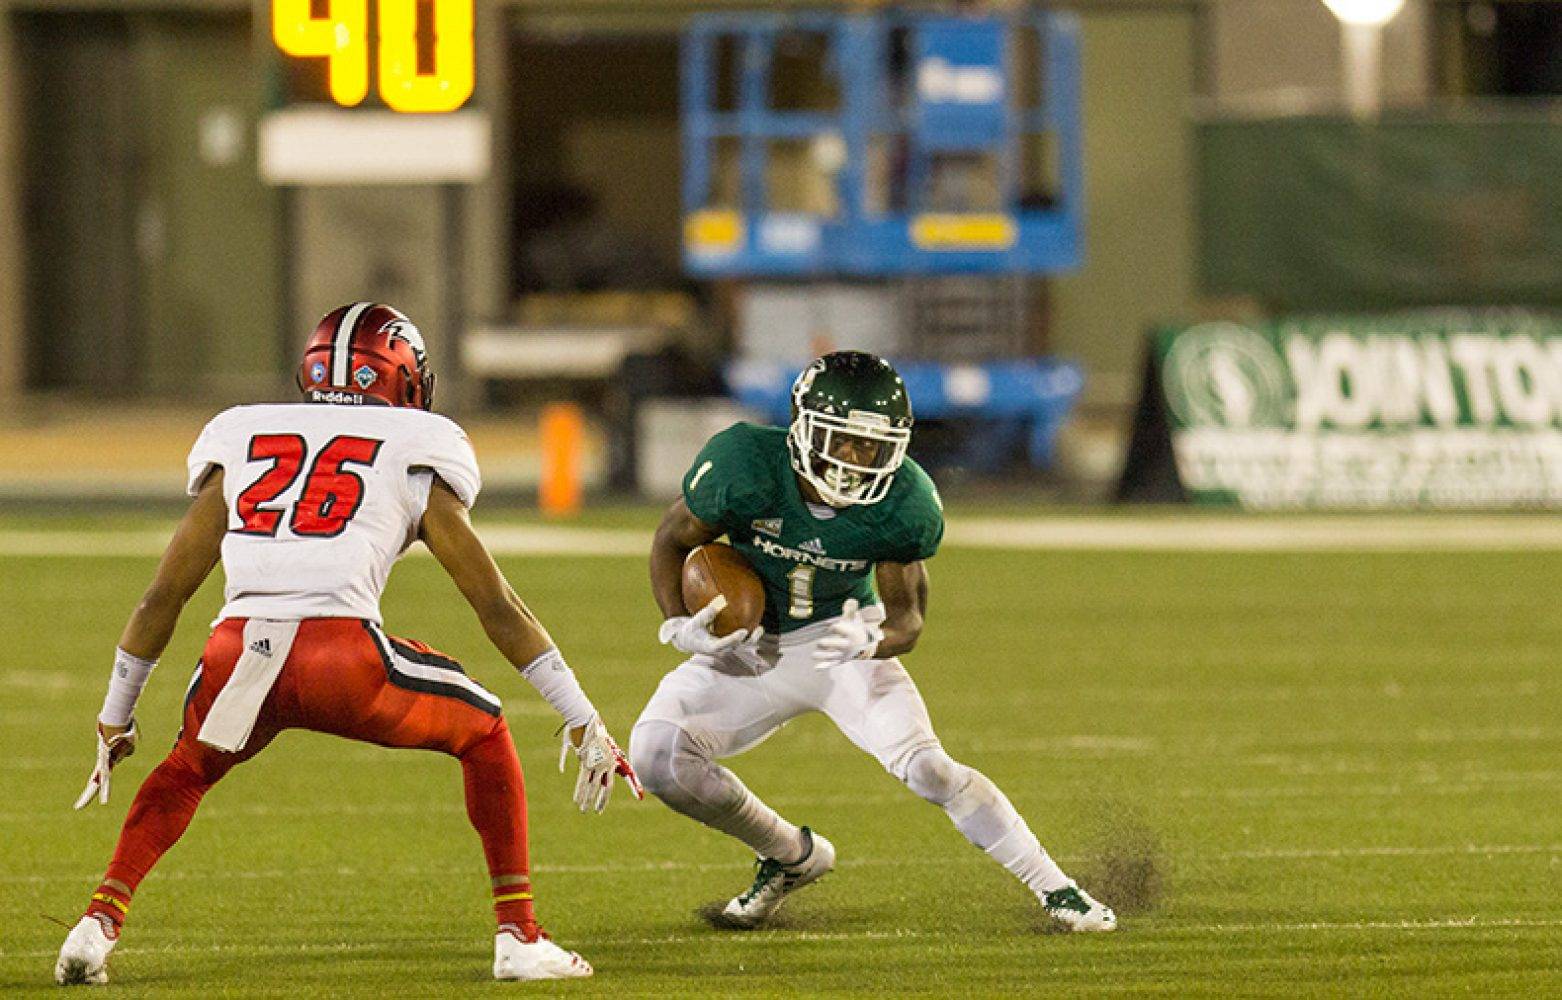 Sacramento State senior receiver Isiah Hennie tries to make a cut on the University of Incarnate Word's  Marquis Britten Saturday, Sept. 9 at Hornet Stadium. Sac State defeated UIW by the score of 56-22.